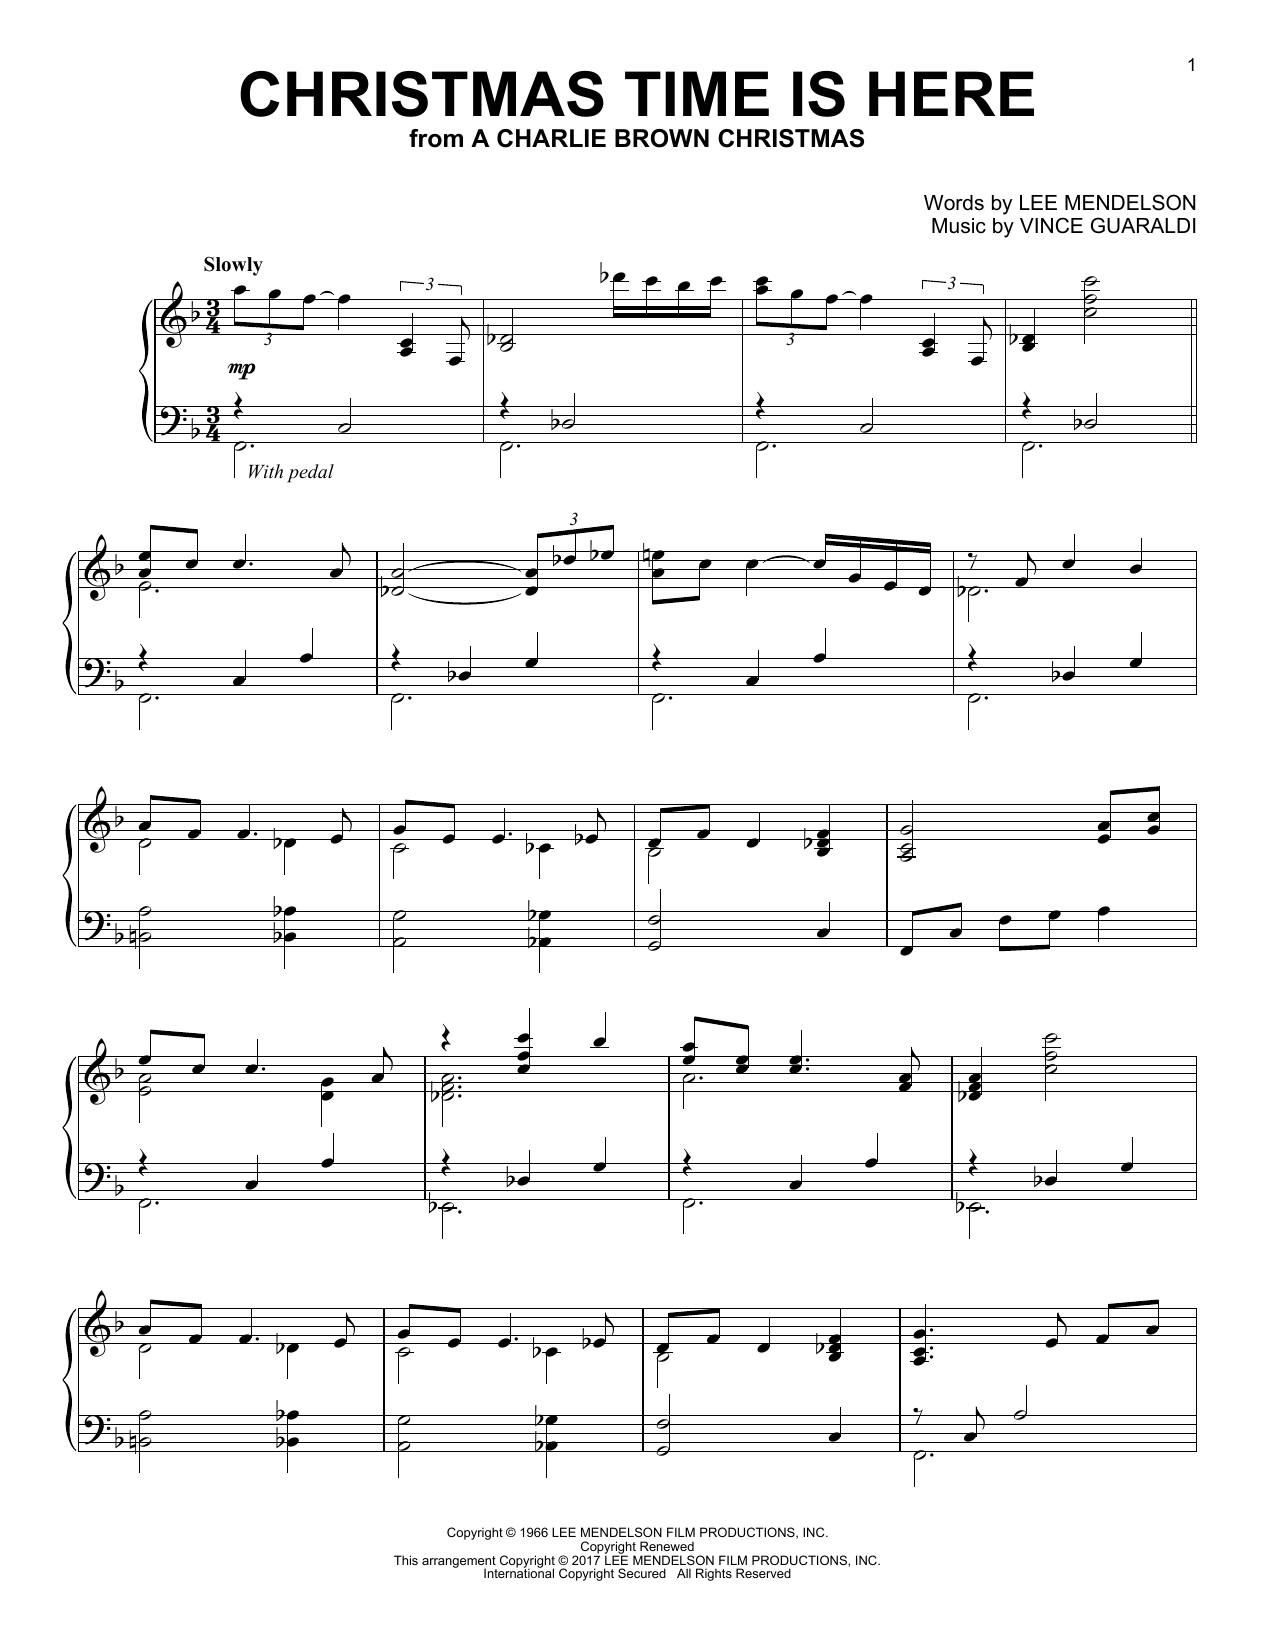 Download Vince Guaraldi 'Christmas Time Is Here' Digital Sheet Music Notes & Chords and start playing in minutes